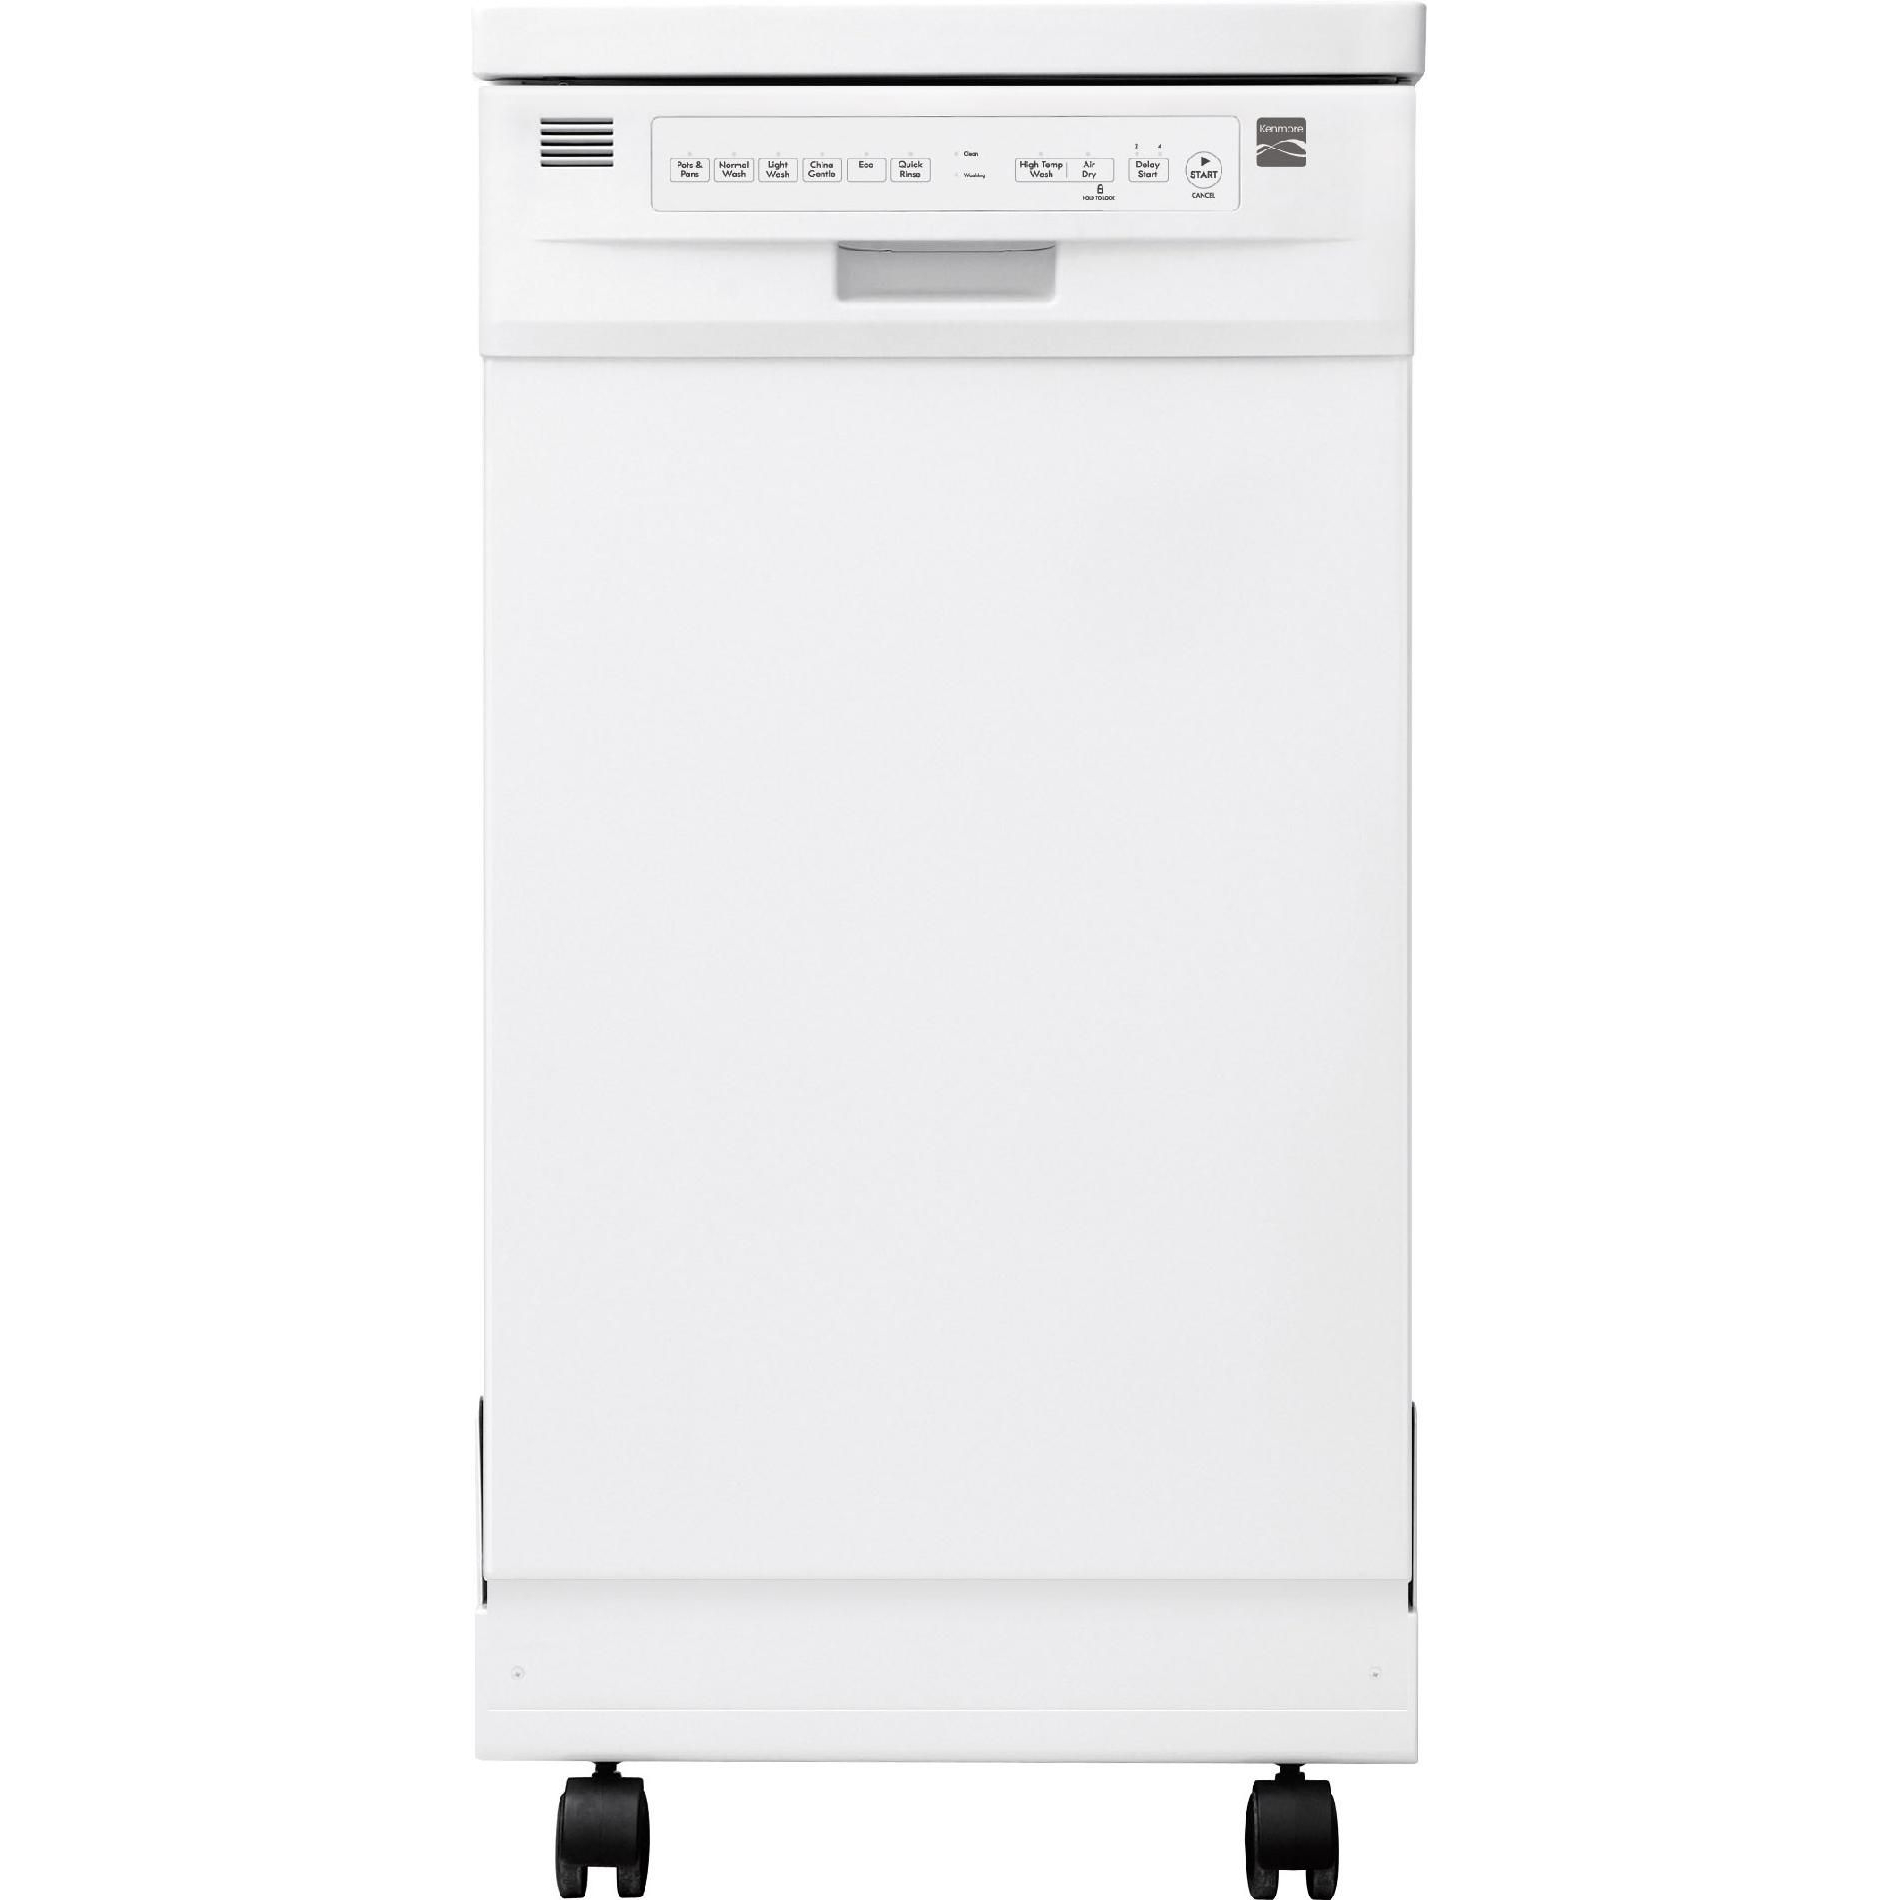 18 Portable Dishwasher Canada Kenmore 14652 18